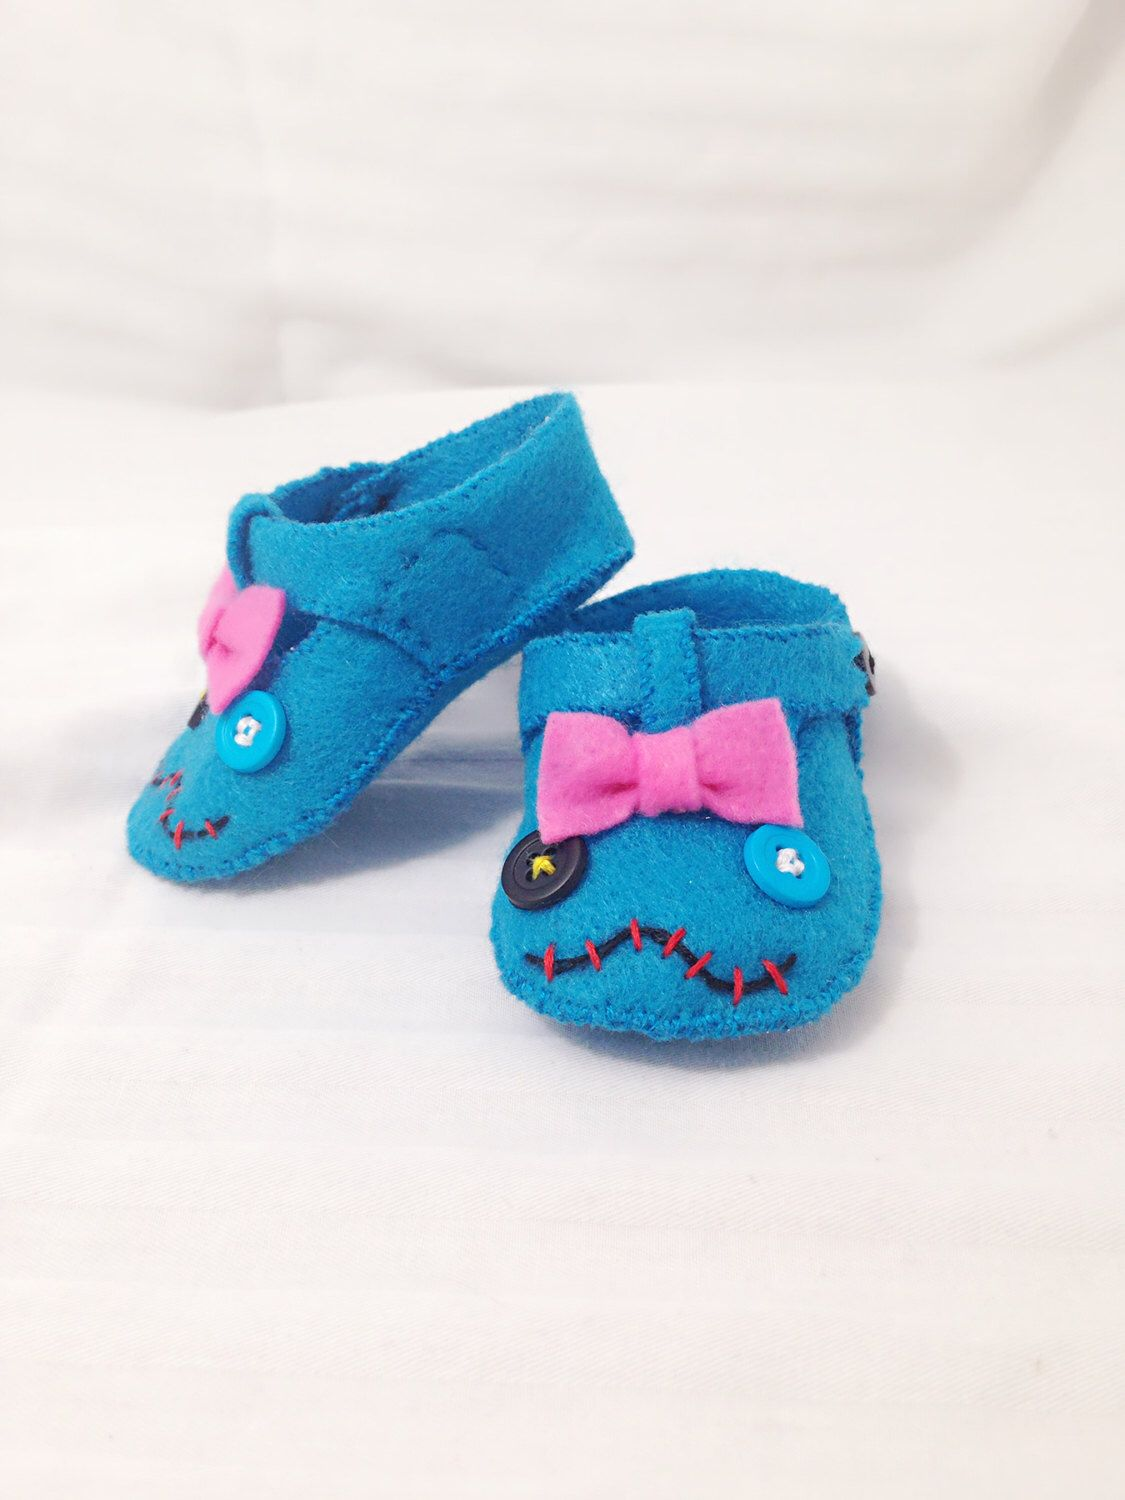 Lilo & Stitch Scrump Baby Shoes, Baby Booties, Baby Slippers, Handmade in Lightweight Felt. by TheNerdEffect on Etsy https://www.etsy.com/listing/247370577/lilo-stitch-scrump-baby-shoes-baby